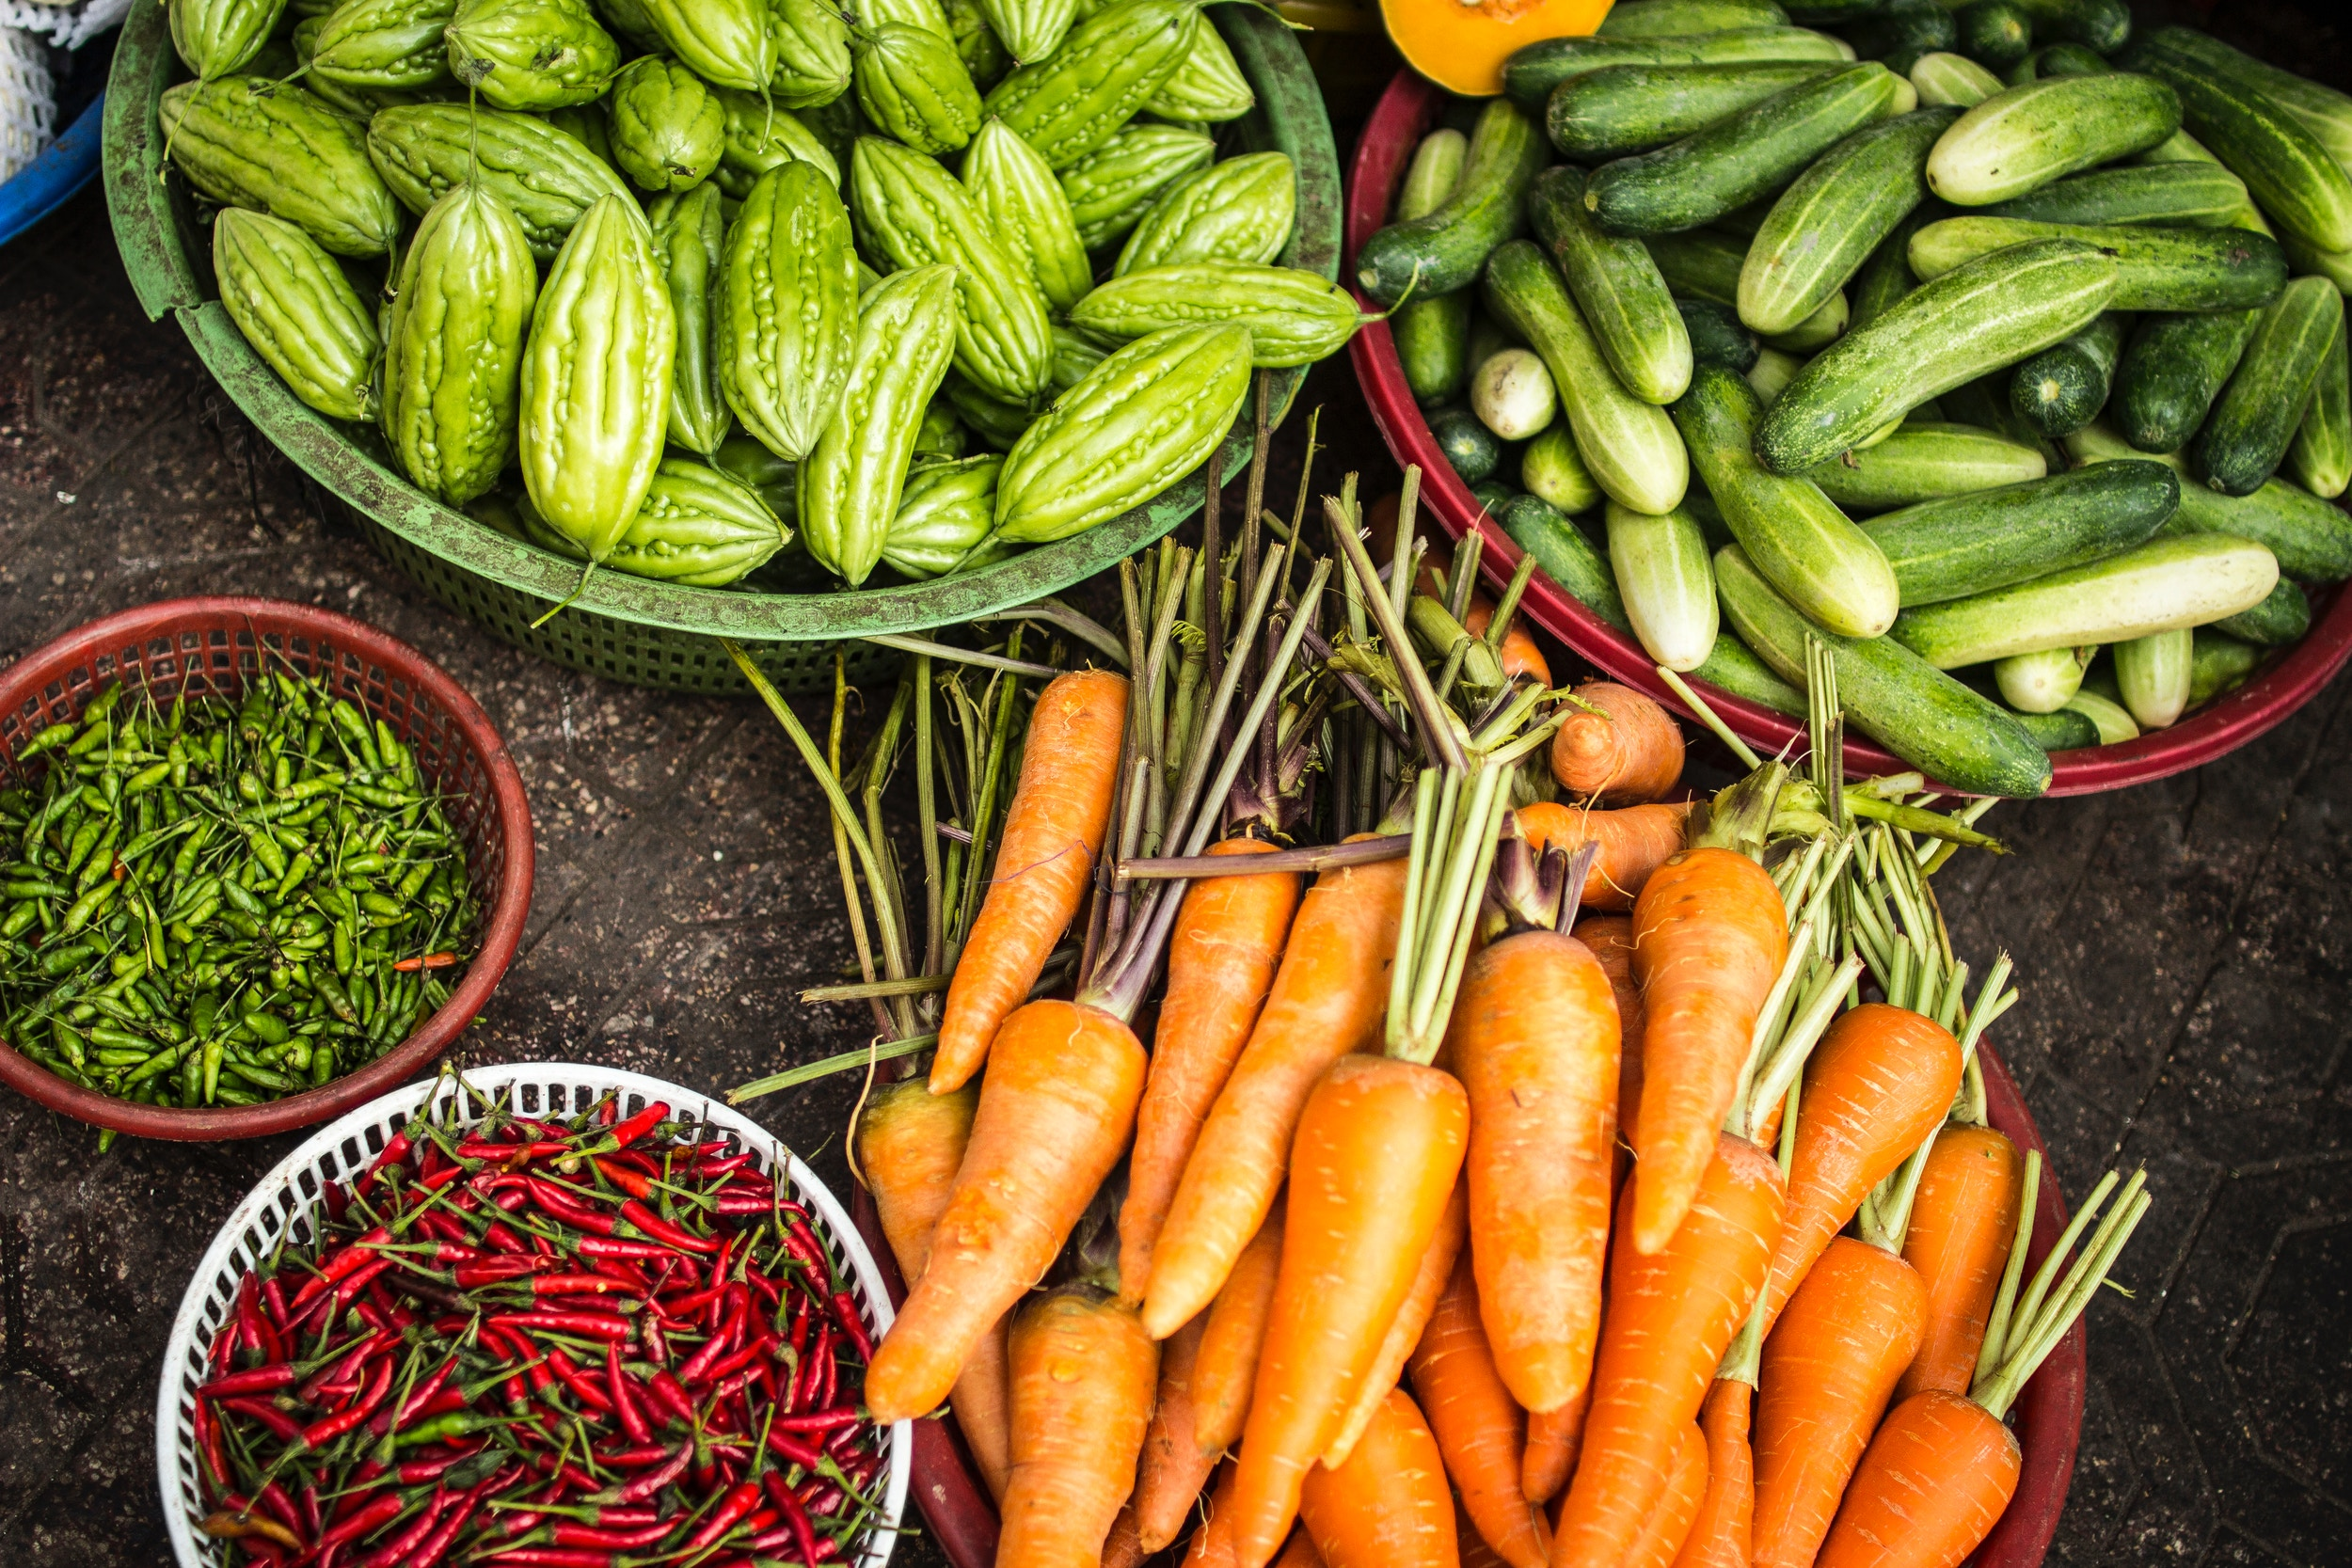 How to Grow Your Own Food -